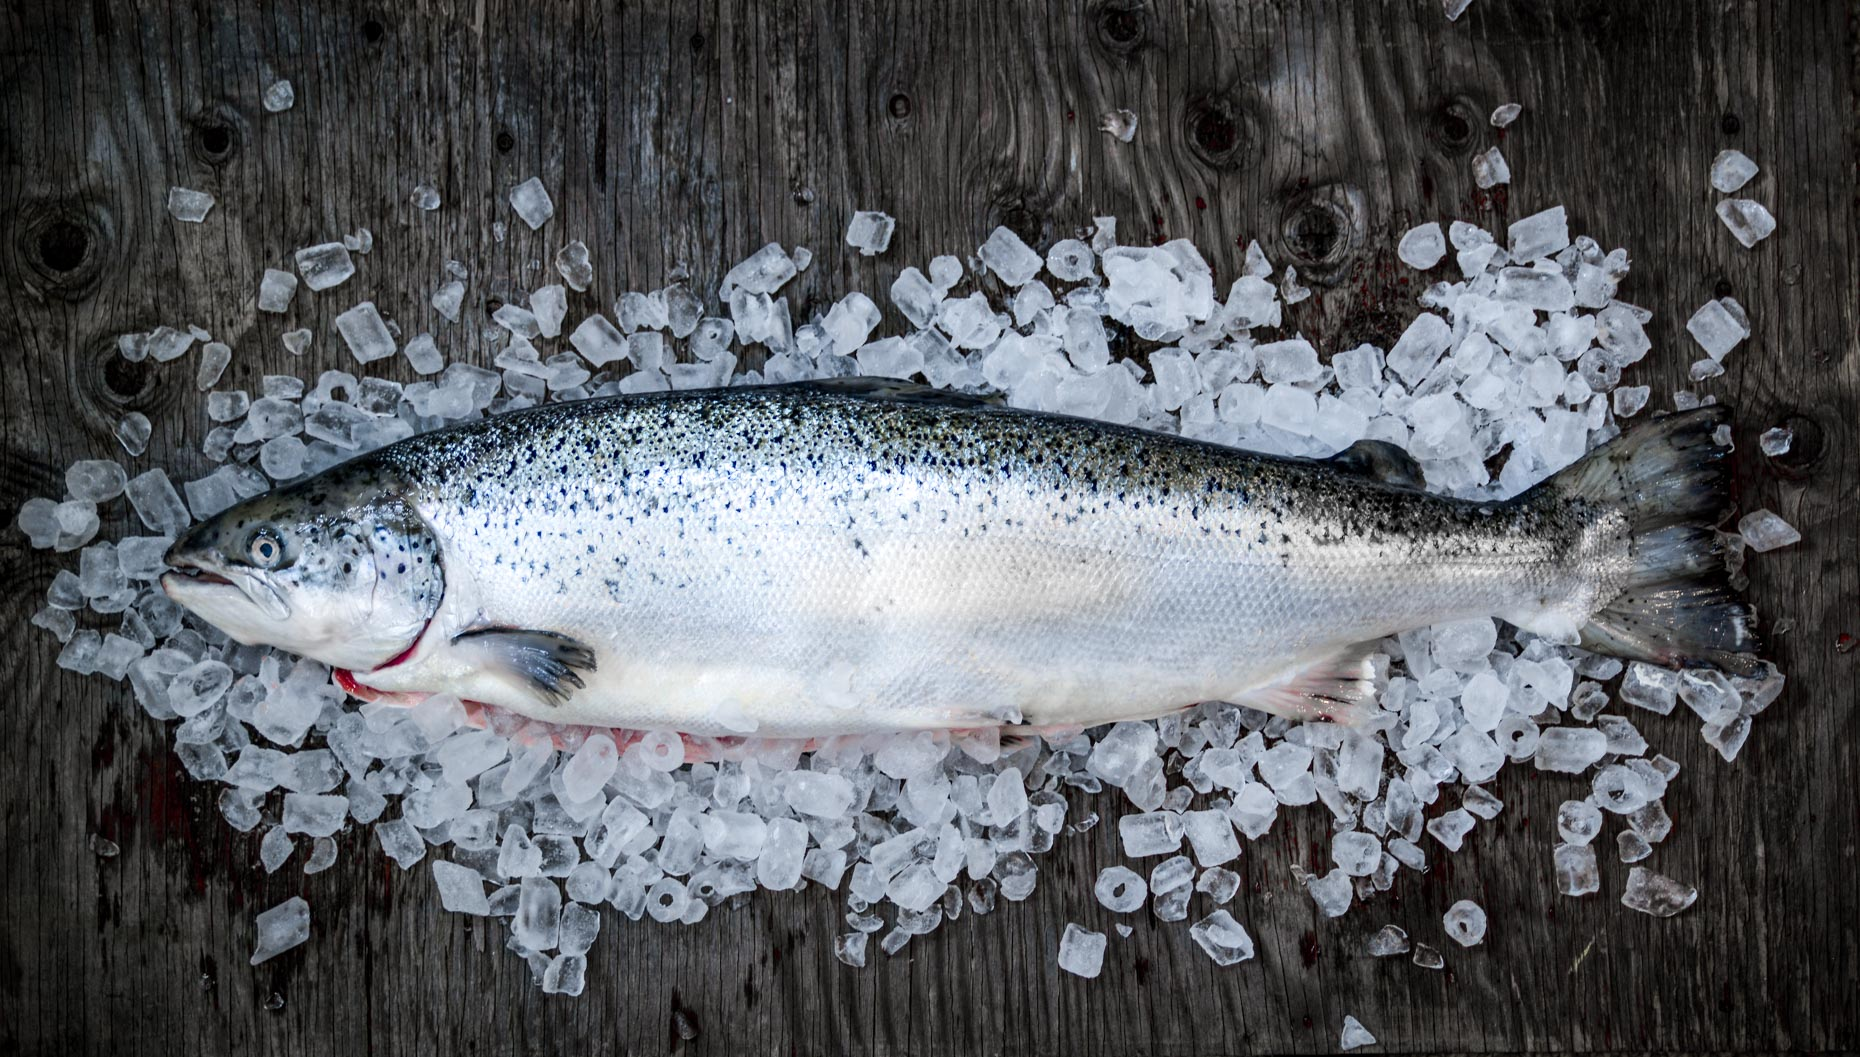 Whole Fresh Farmed Salmon on Bed of Ice on Rustic Wood